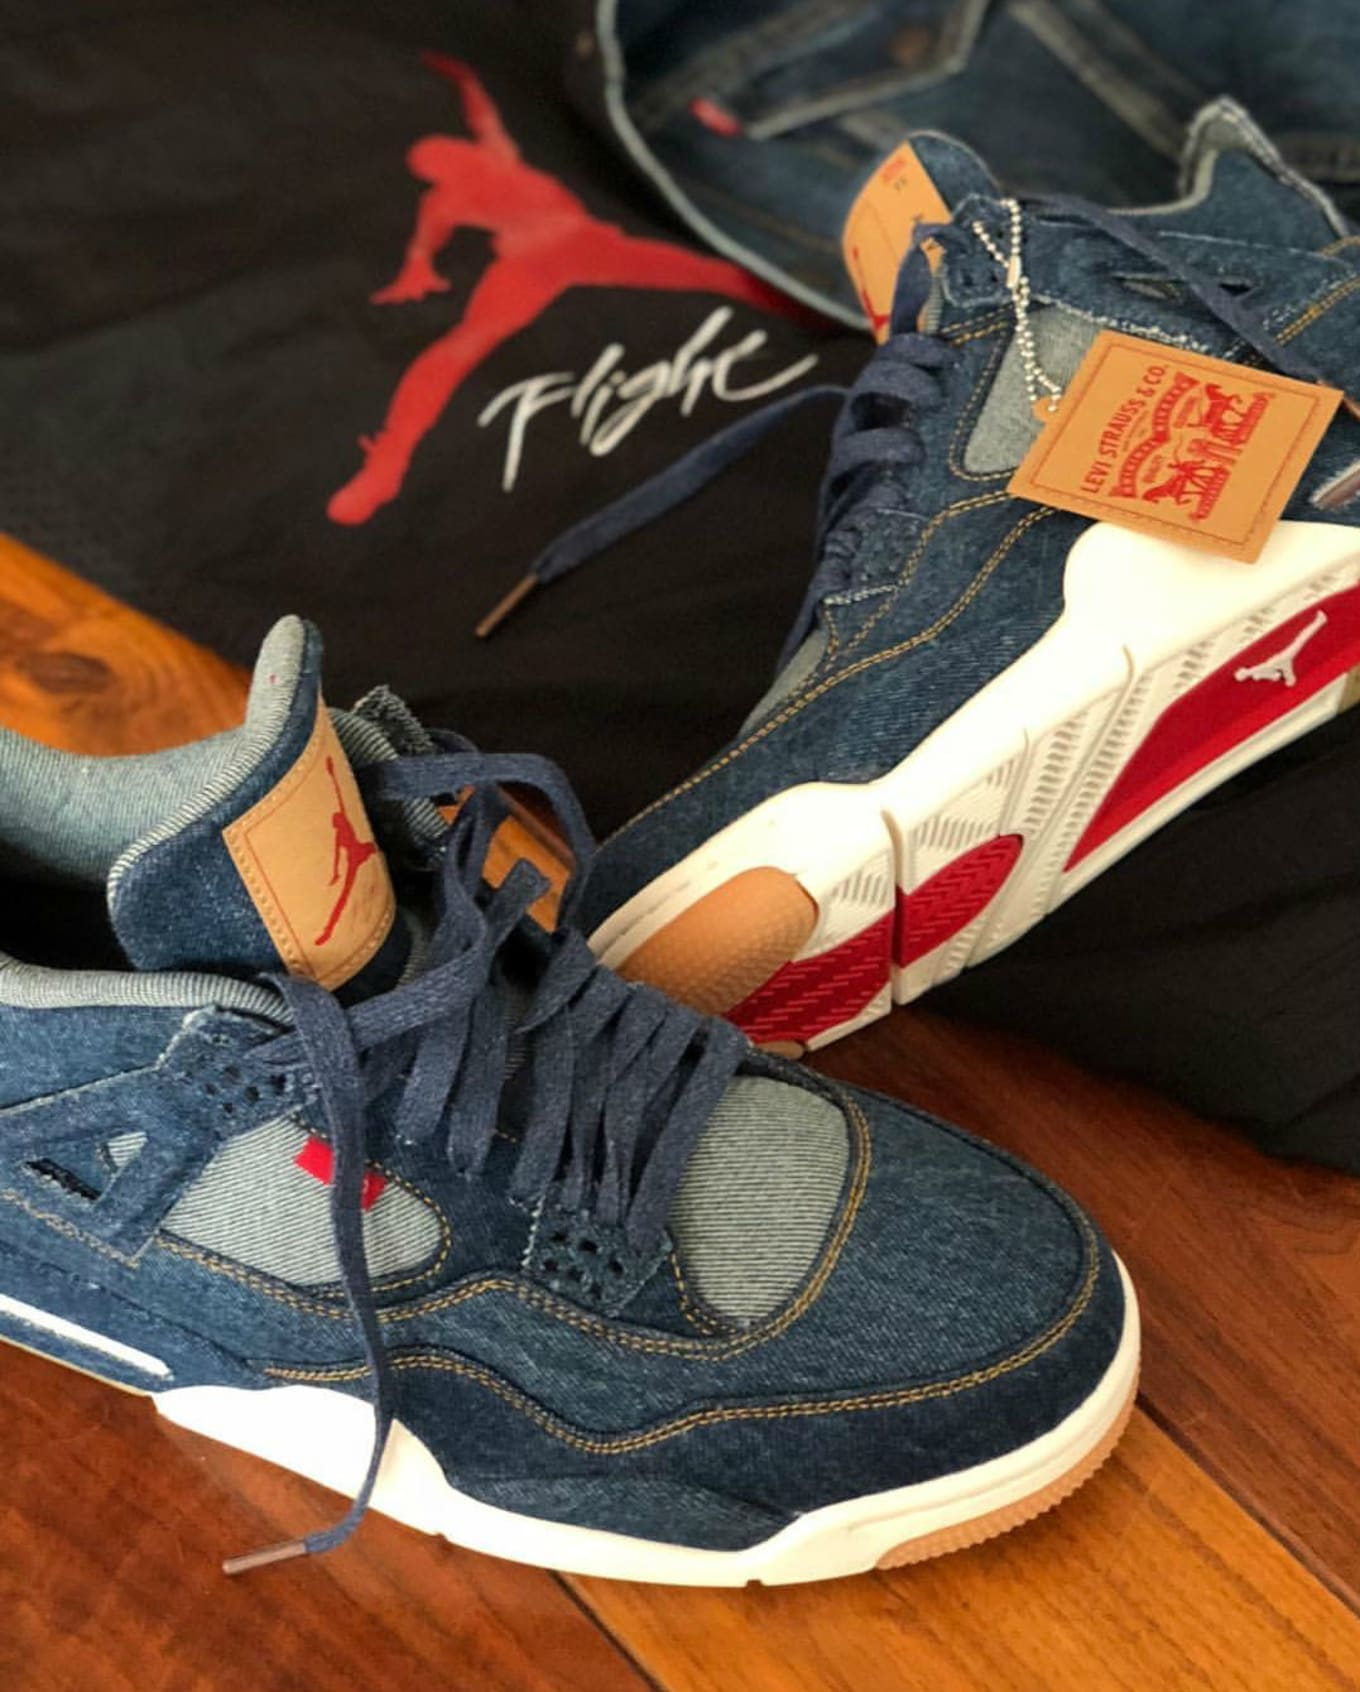 72bc5abdf35 The Levi's x Air Jordan 4 Comes with a Reversible Denim Jacket. The  collaboration keeps getting better.